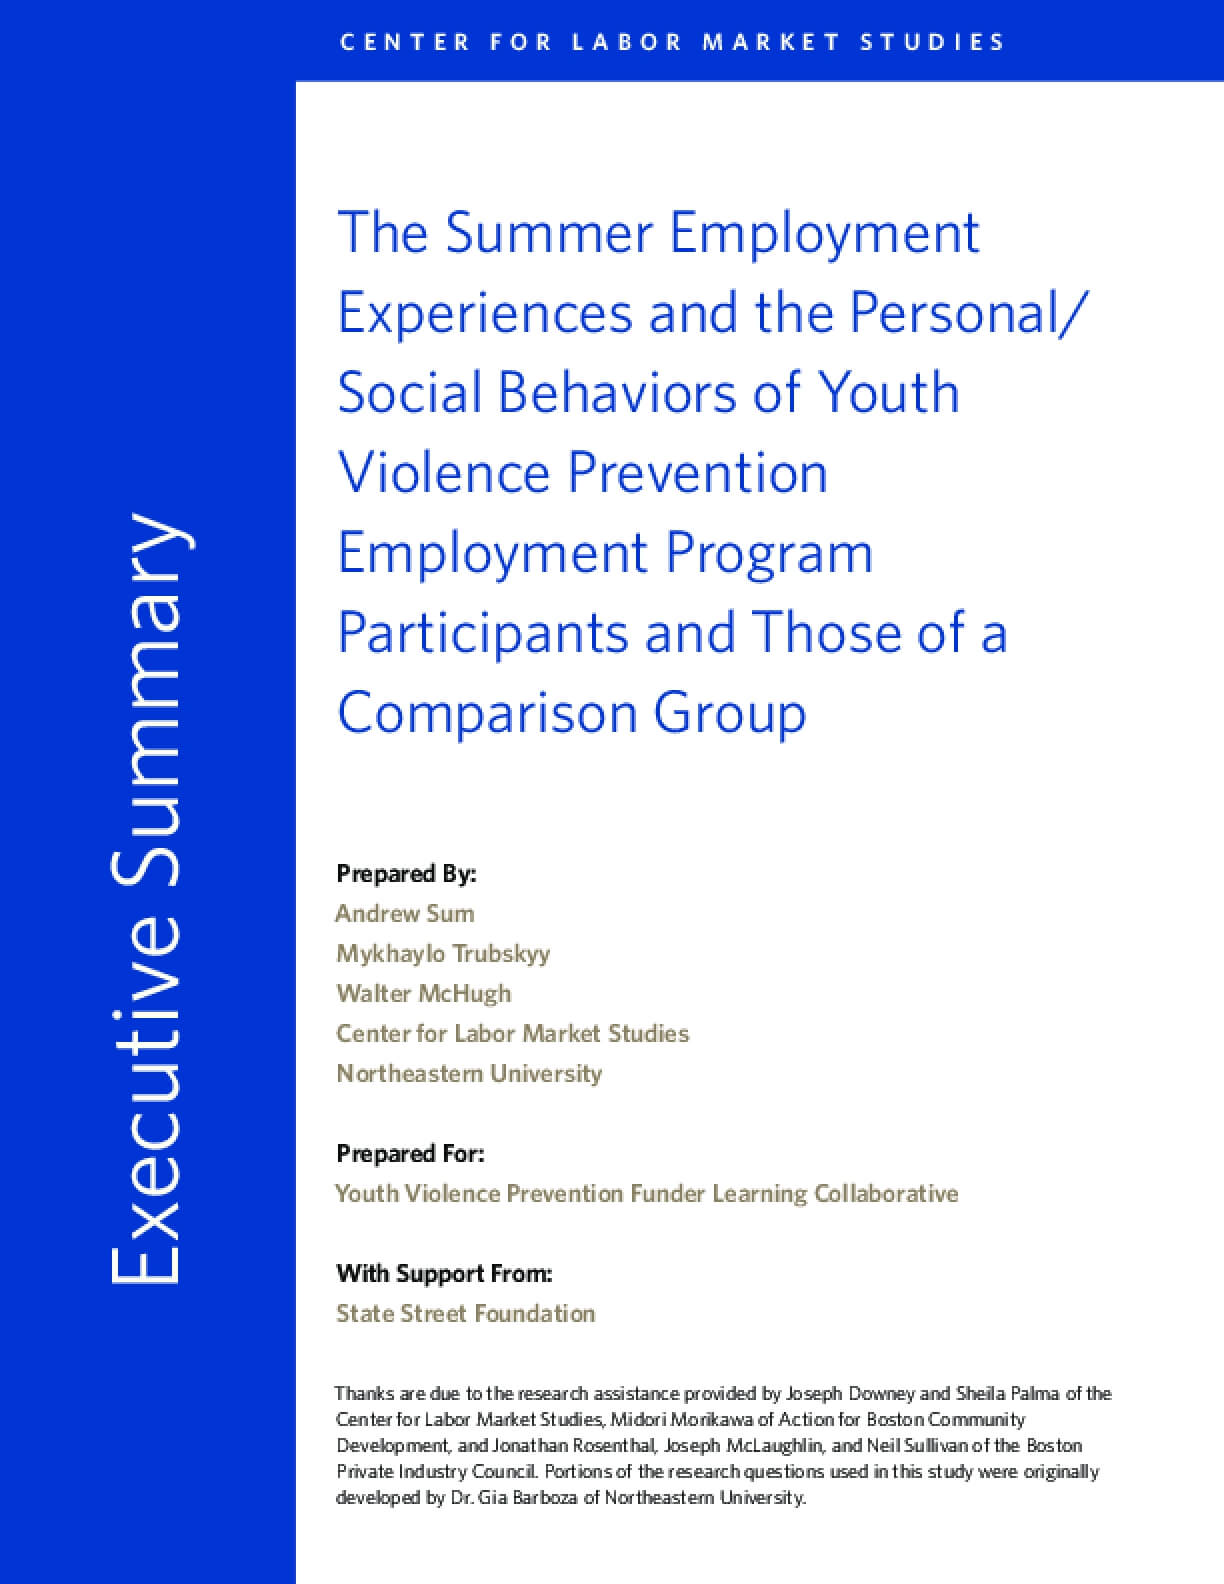 The Summer Employment Experiences and the Personal/ Social Behaviors of Youth Violence Prevention Employment Program Participants and Those of a Comparison Group